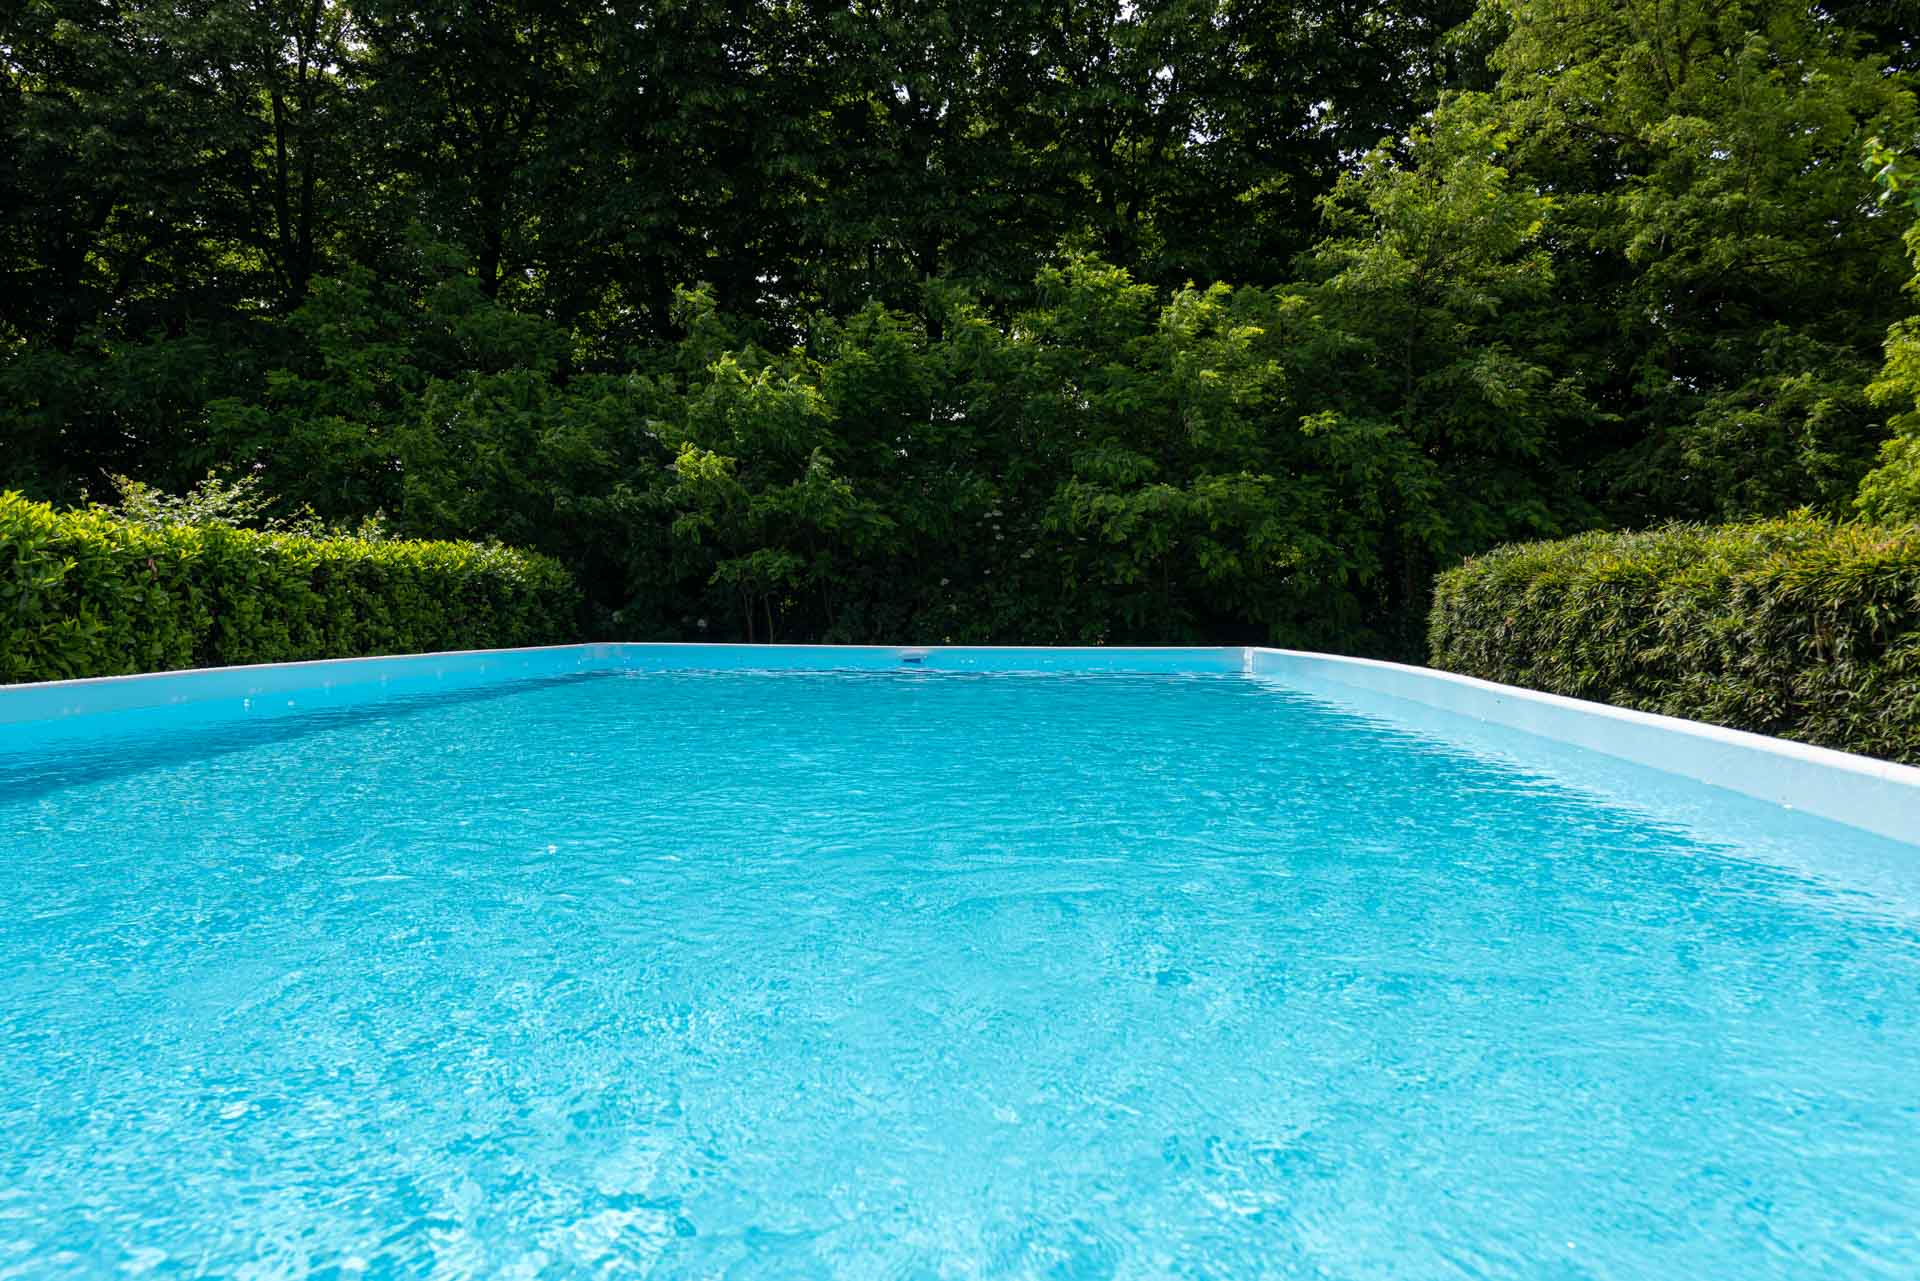 Rates apartments near monselice padova italy for Piscina h2o ronchi